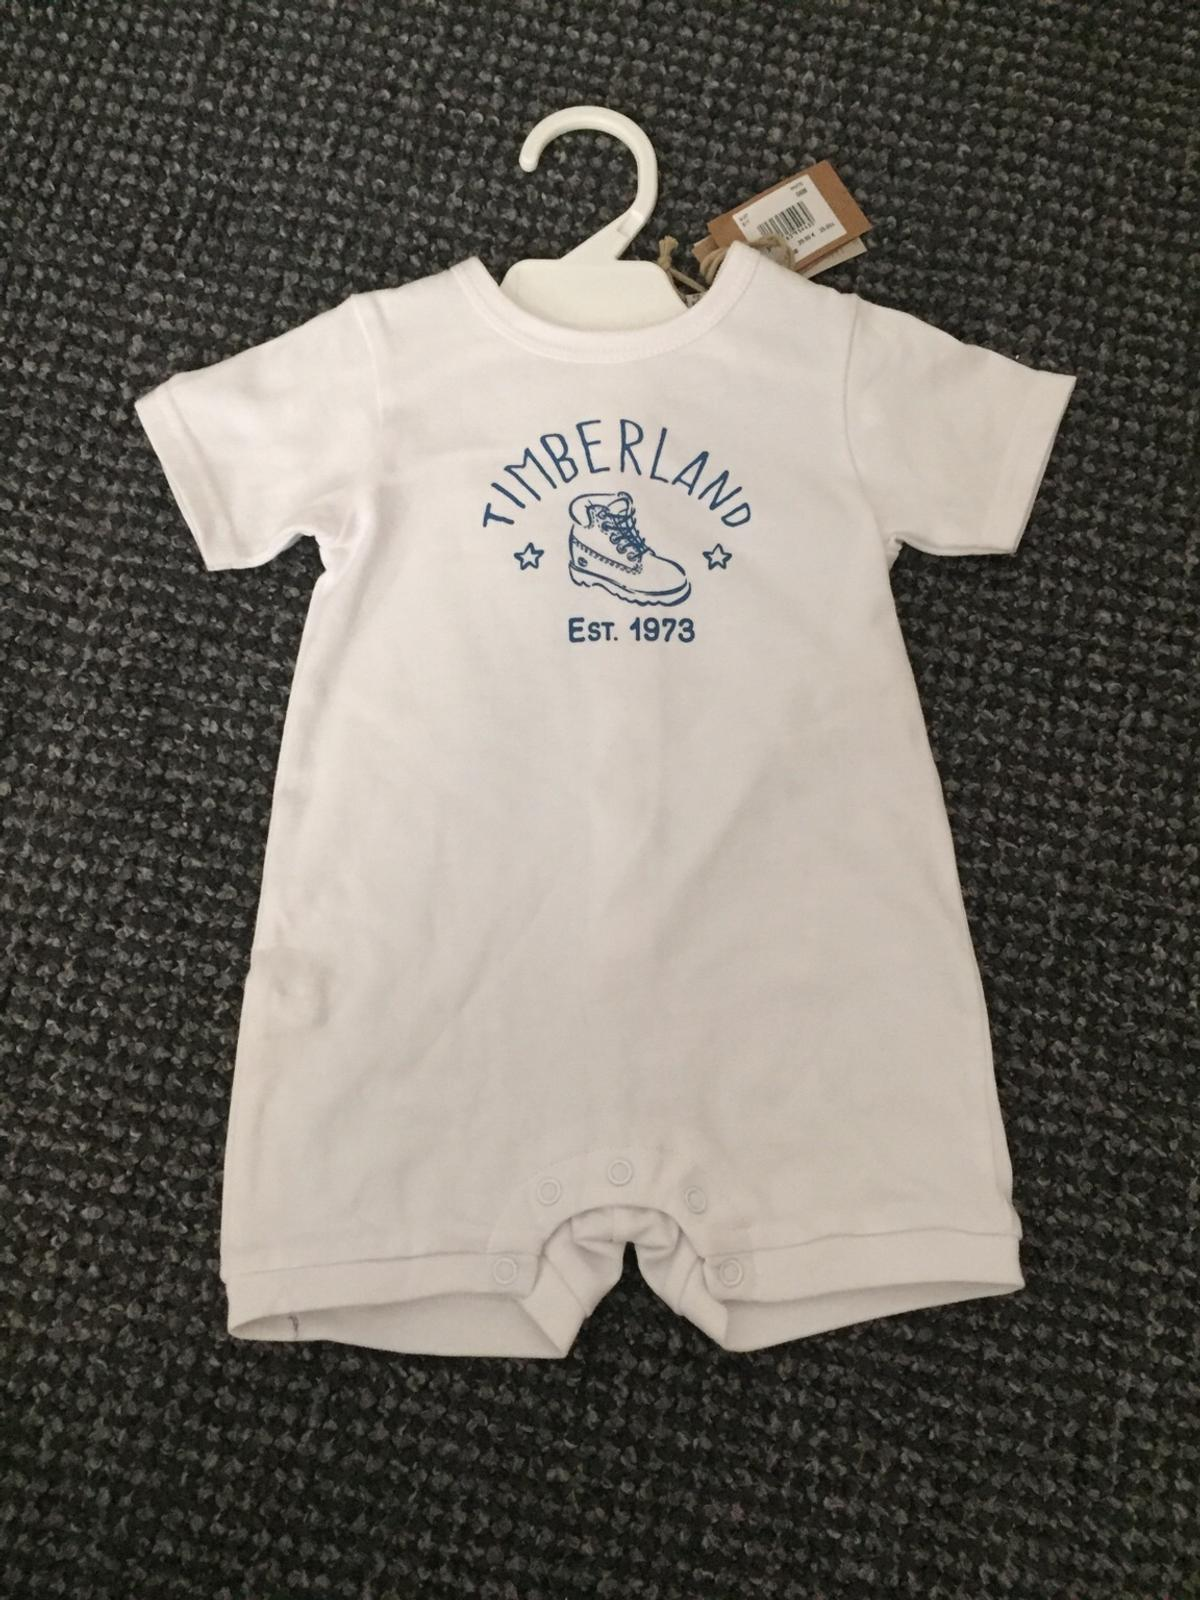 Timberland suit 0/6 month new with tags No offers